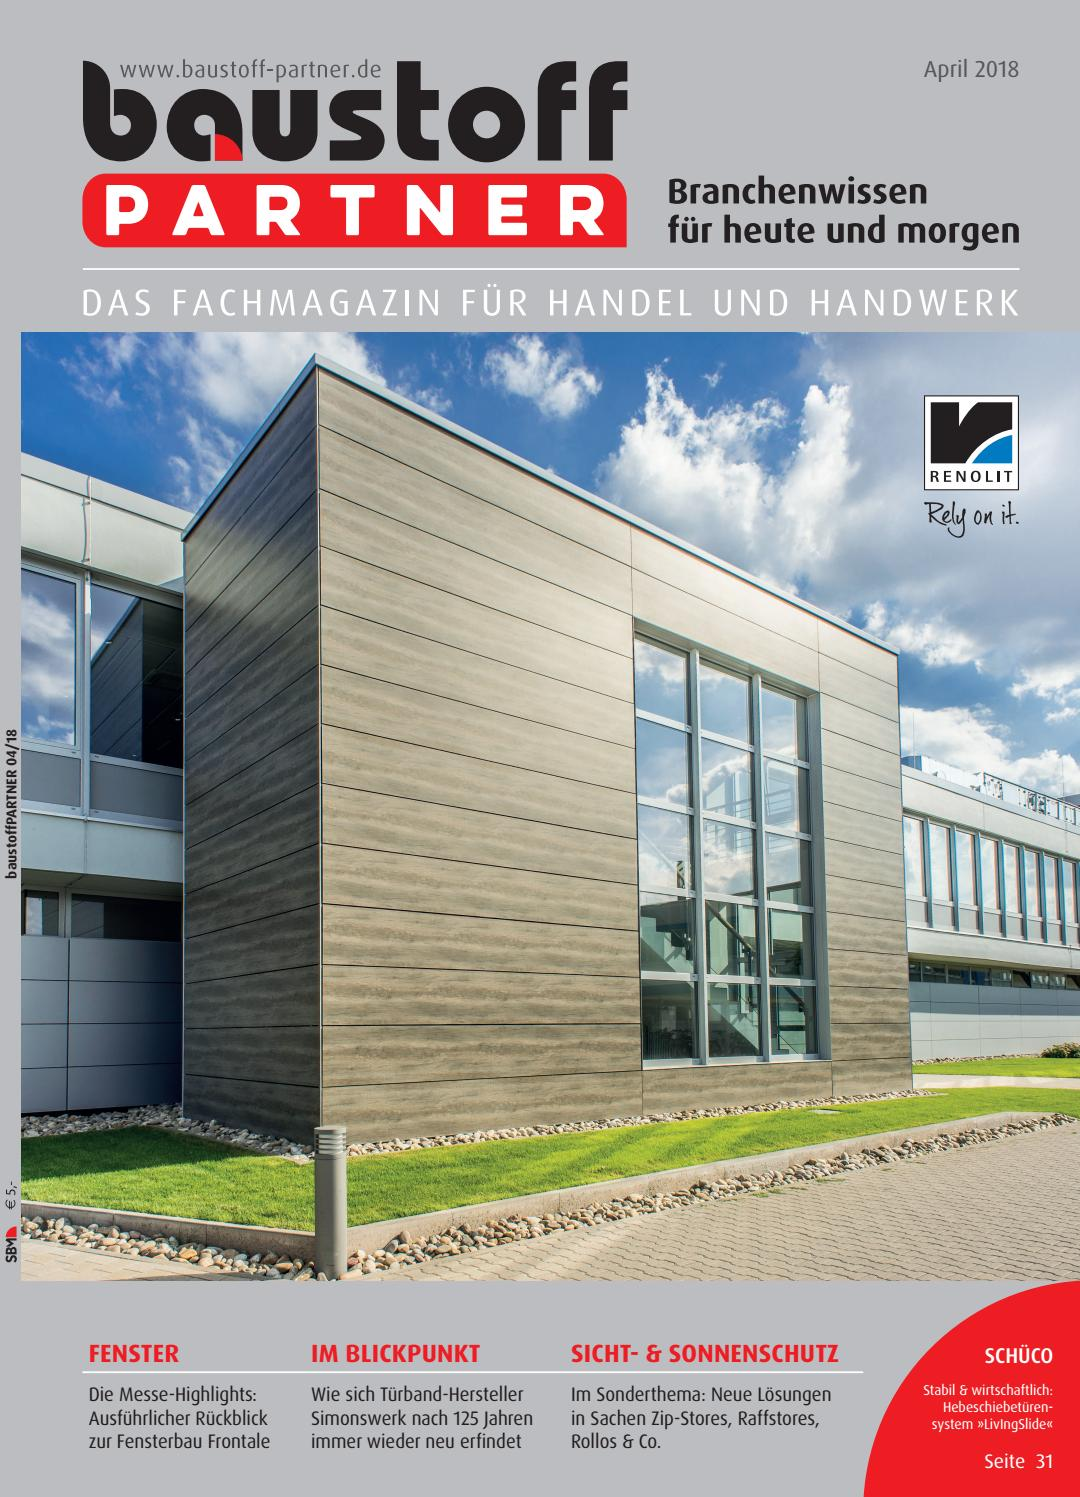 baustoffPARTNER April 2018 by SBM Verlag GmbH - issuu